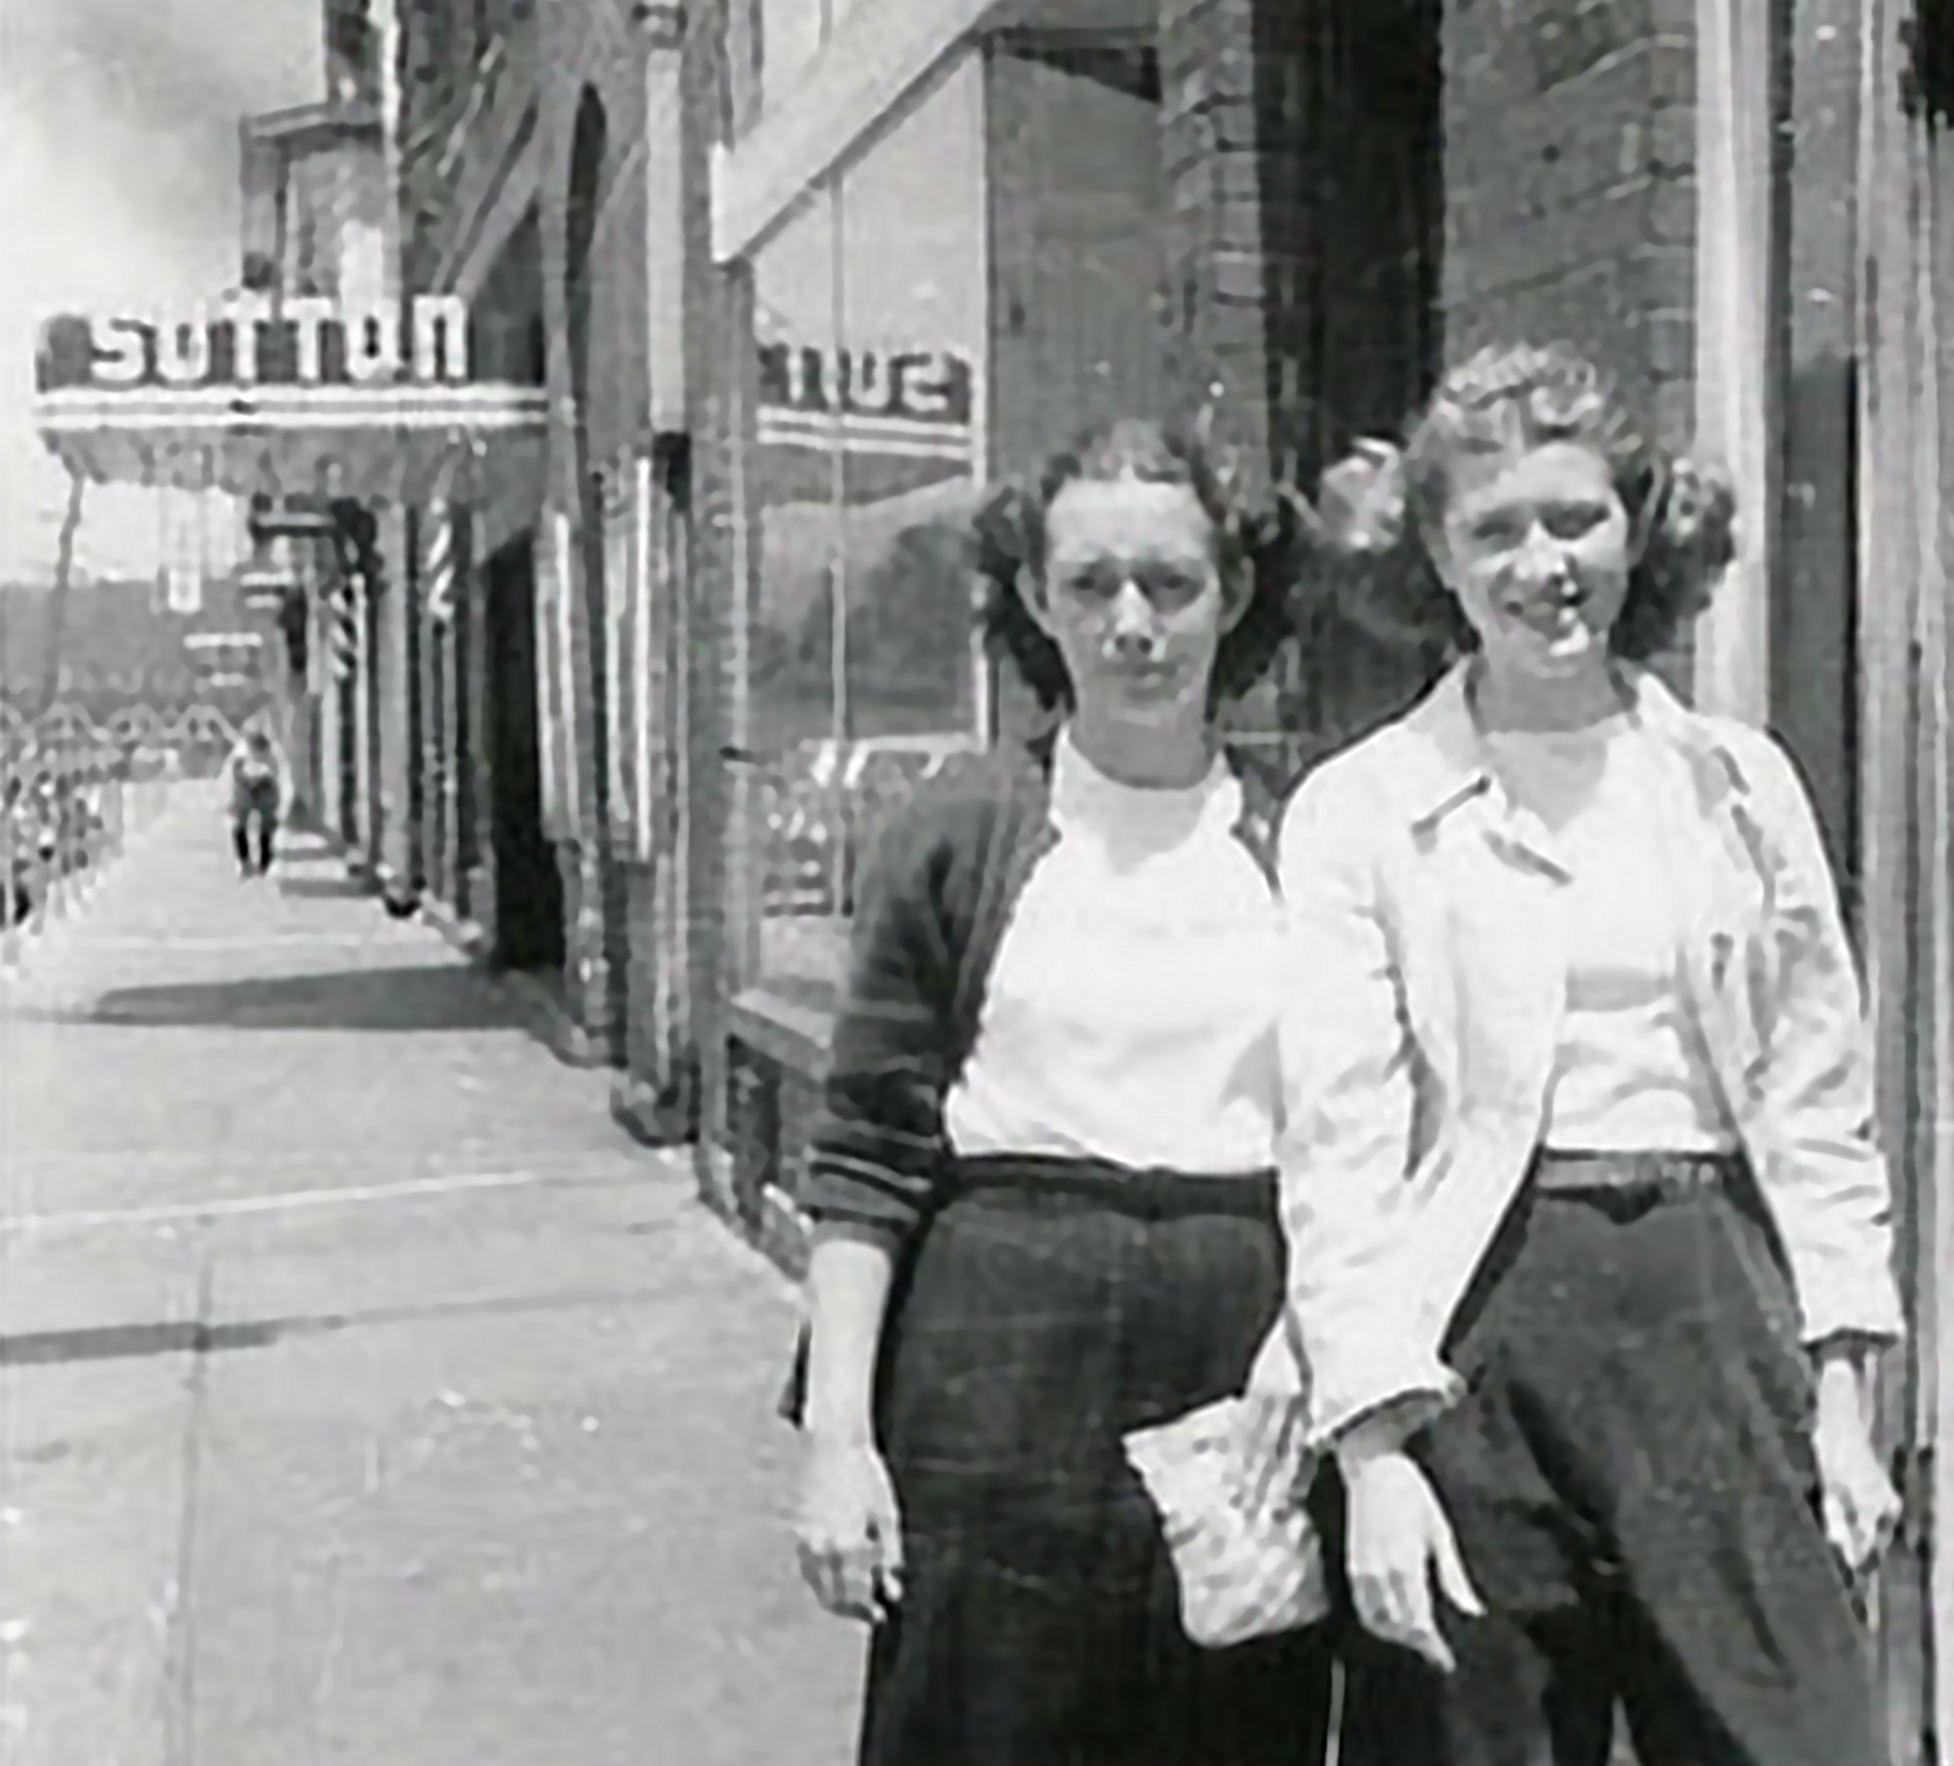 Local residents outside Sutton Theater in Thomas. Note the marquee in the background (the marquee has been placed into storage for potential future restoration and reuse).